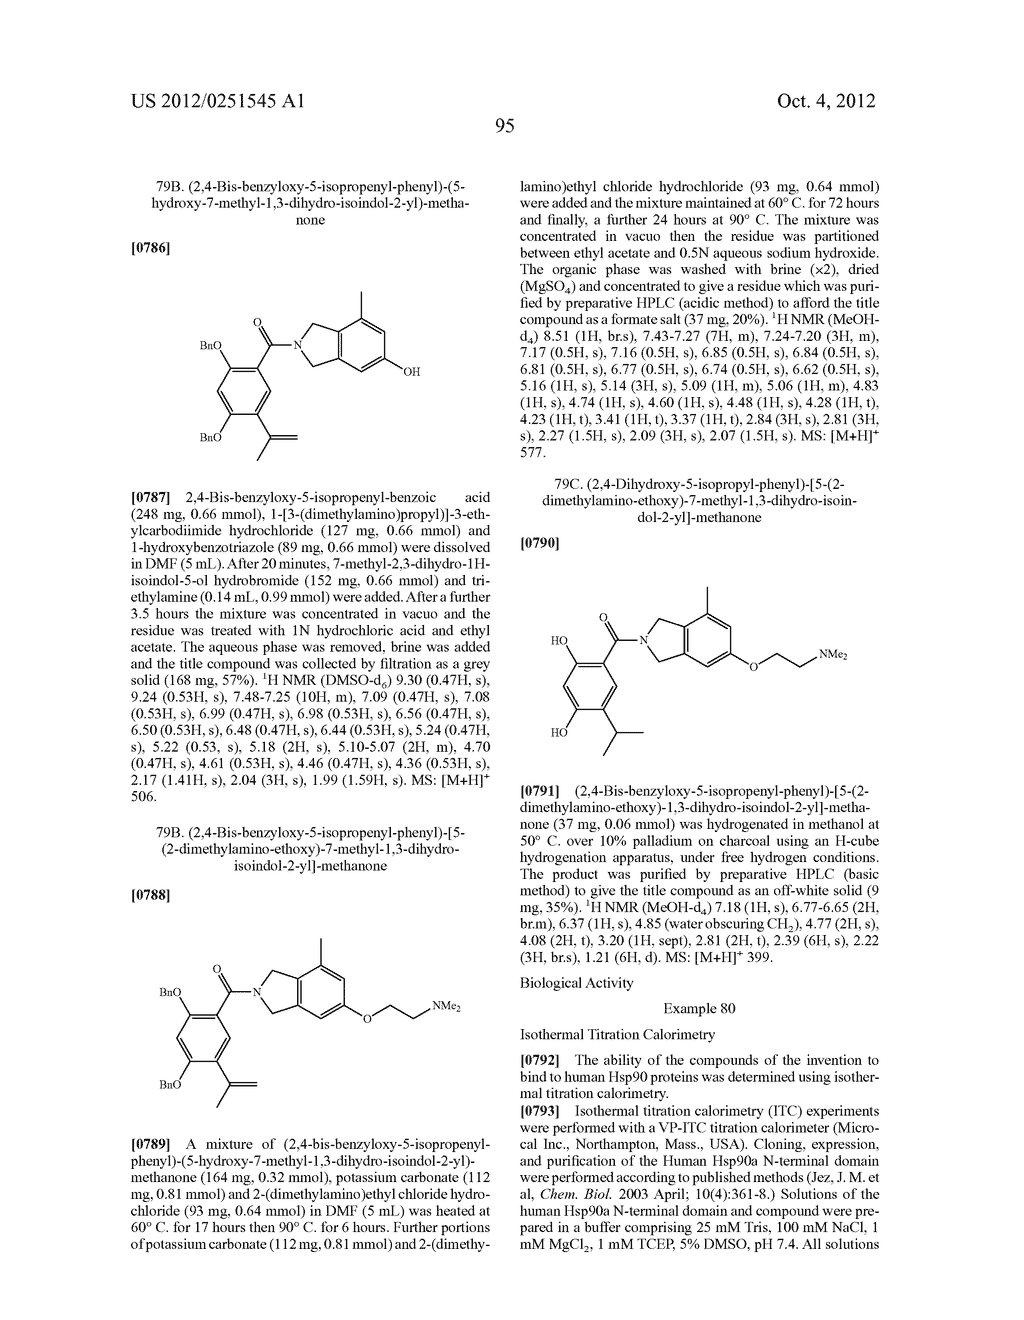 Therapeutic Combinations Of Hydroxybenzamide Derivatives As Inhibitors Of     HSP90 - diagram, schematic, and image 96